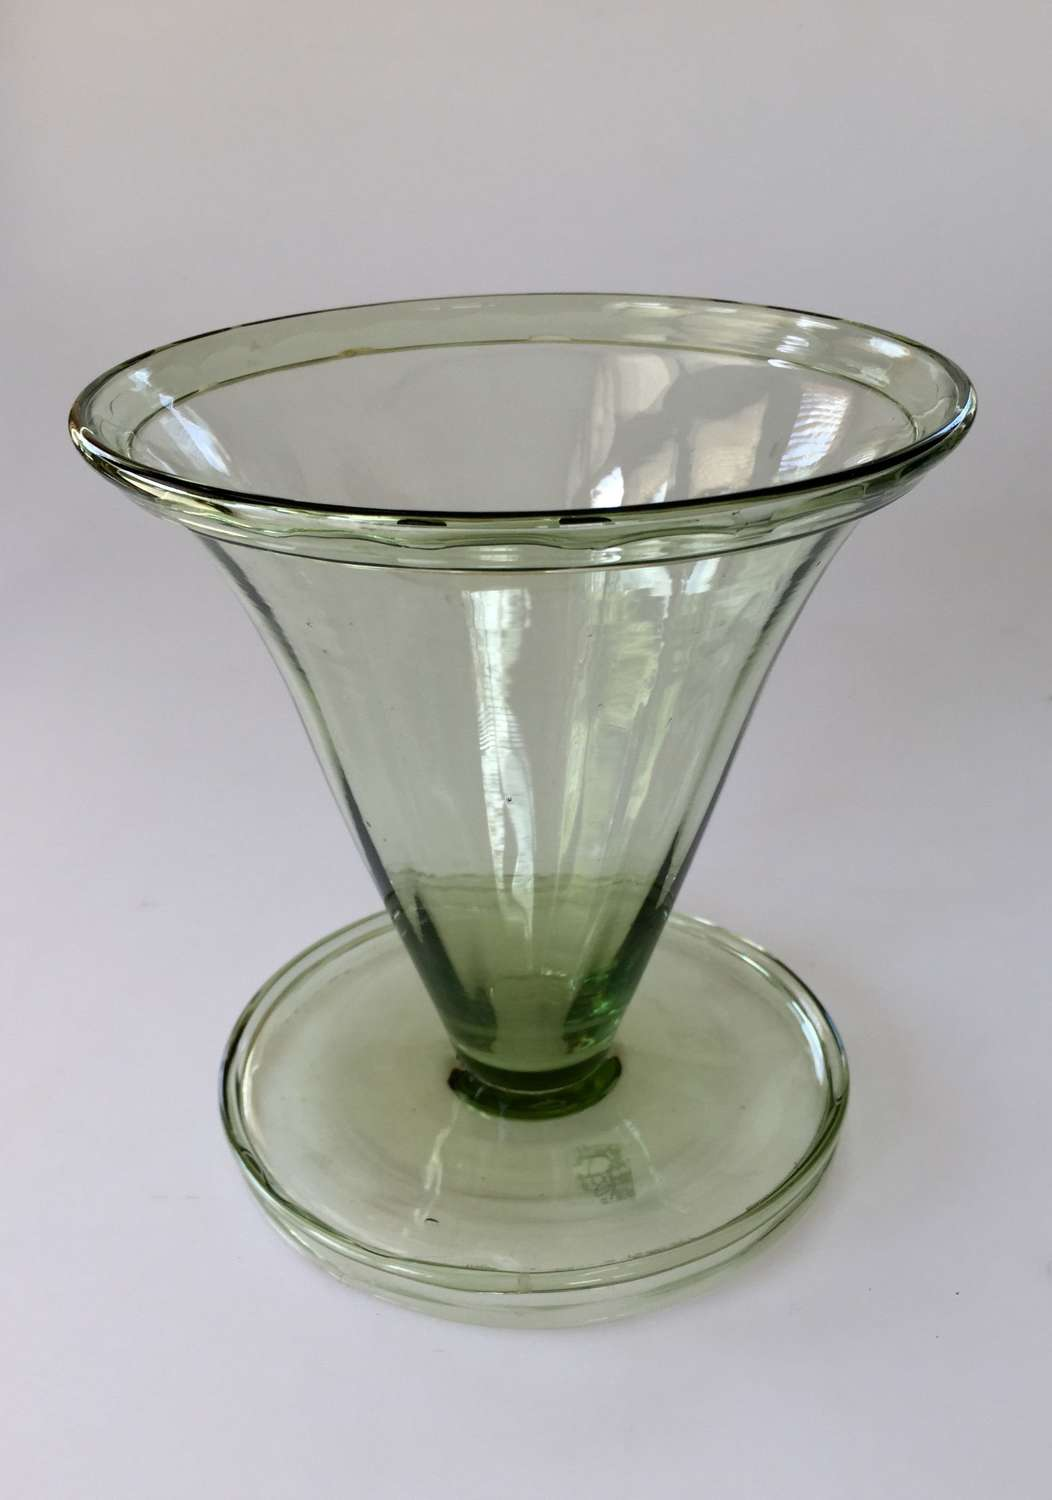 Sea green fluted trumpet vase, Whitefriars